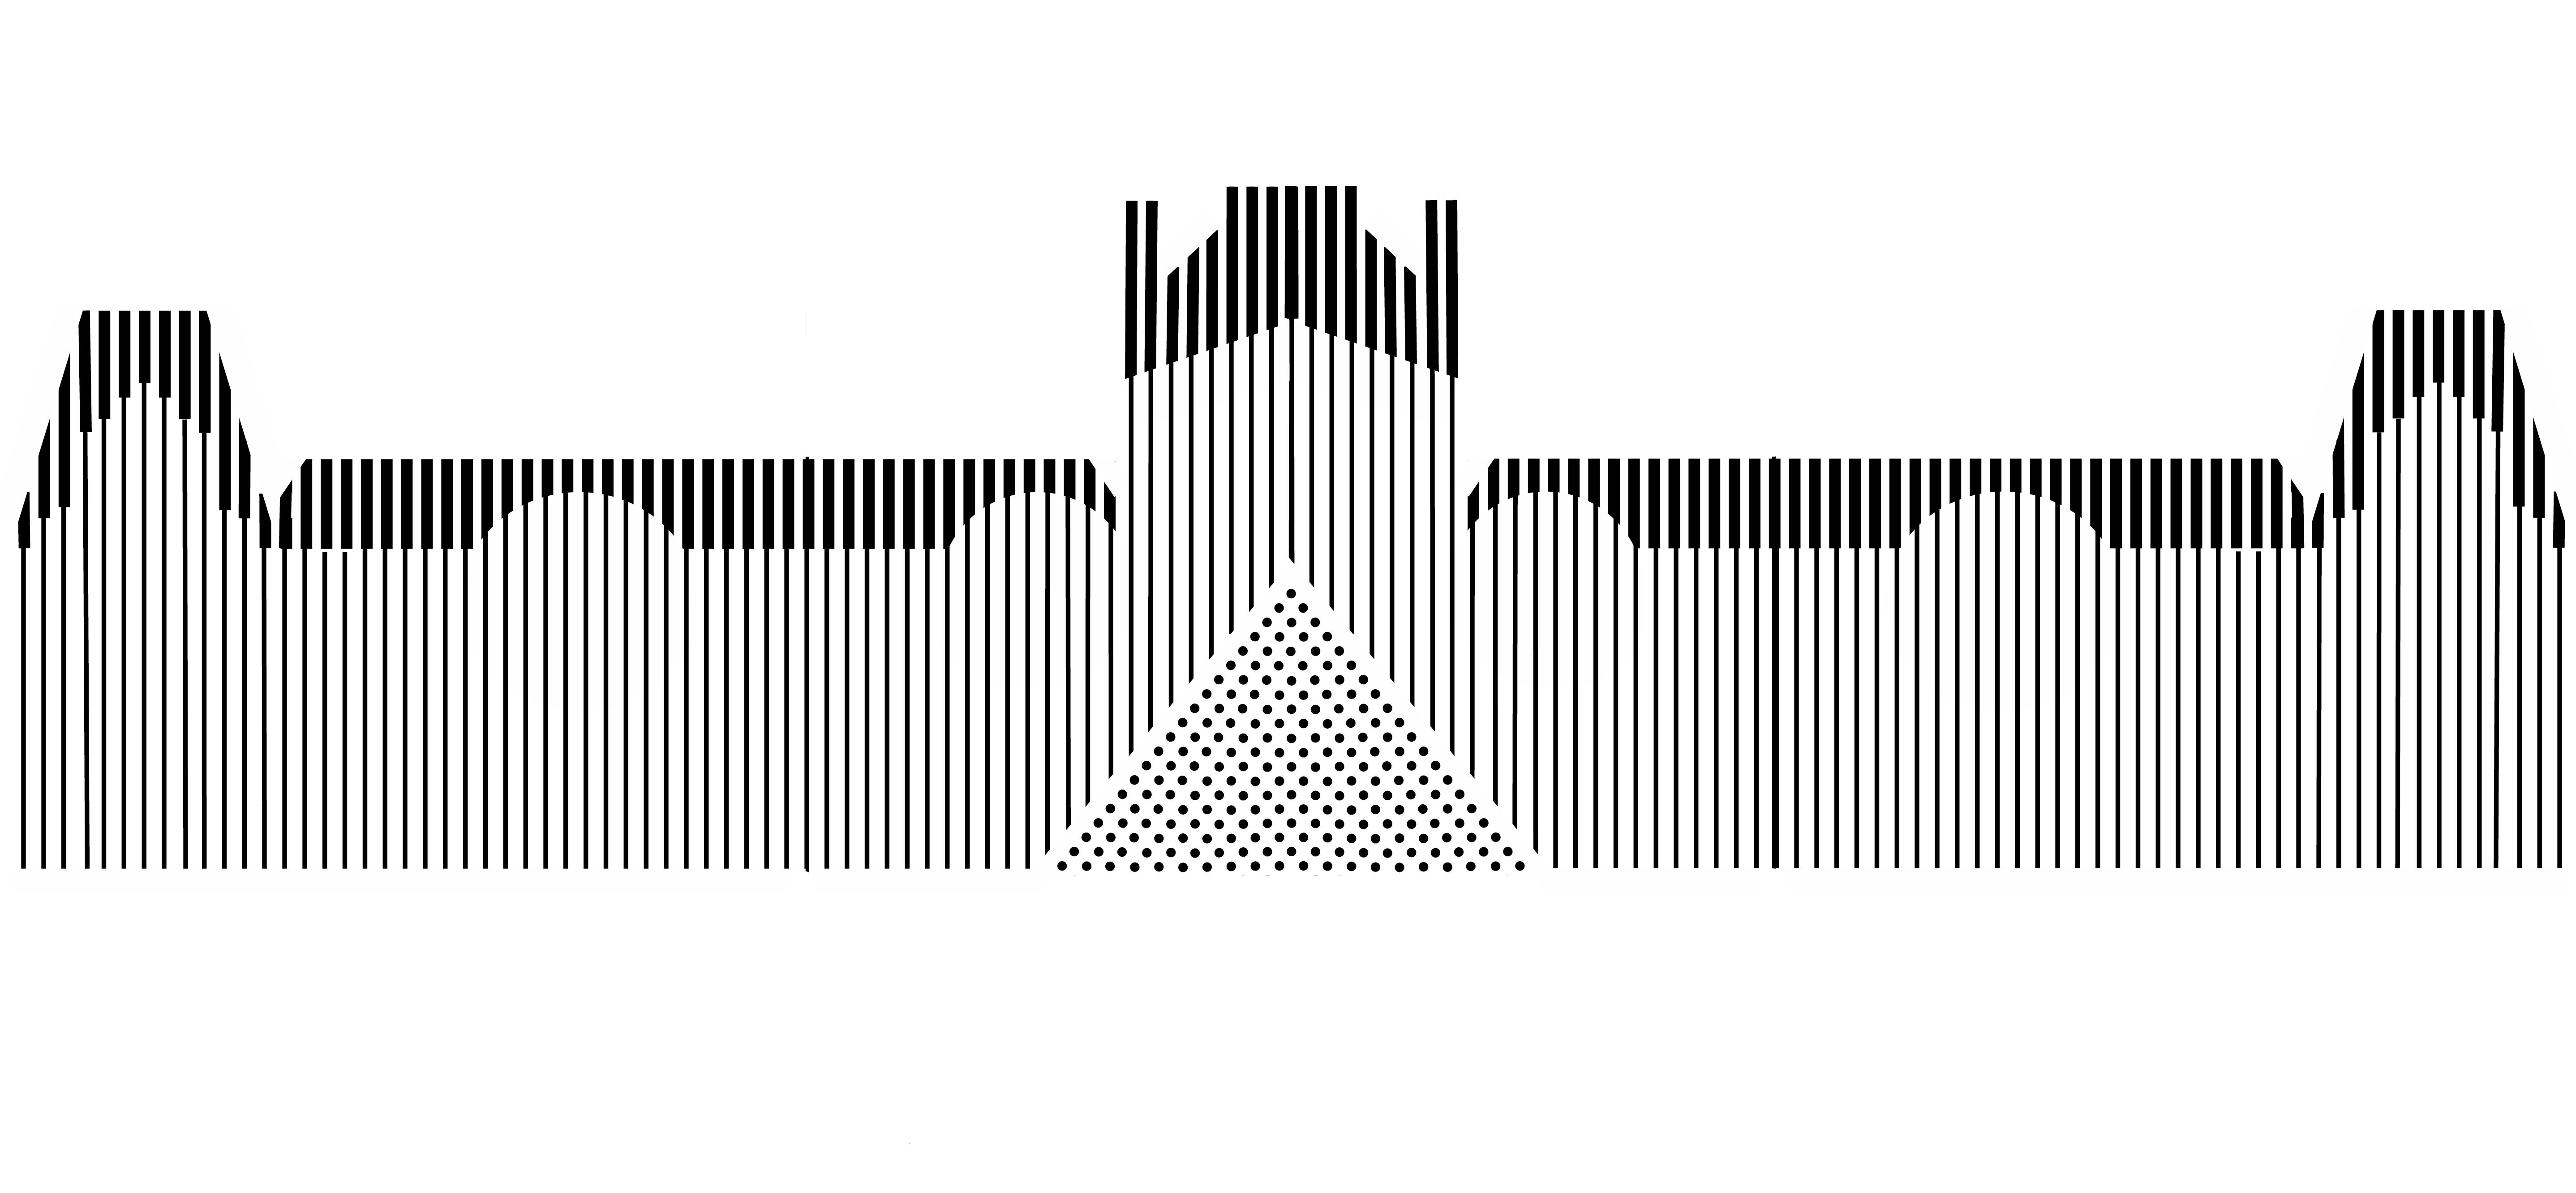 A graphic representation of the Louvre building using gray vertical lines of various darknesses.